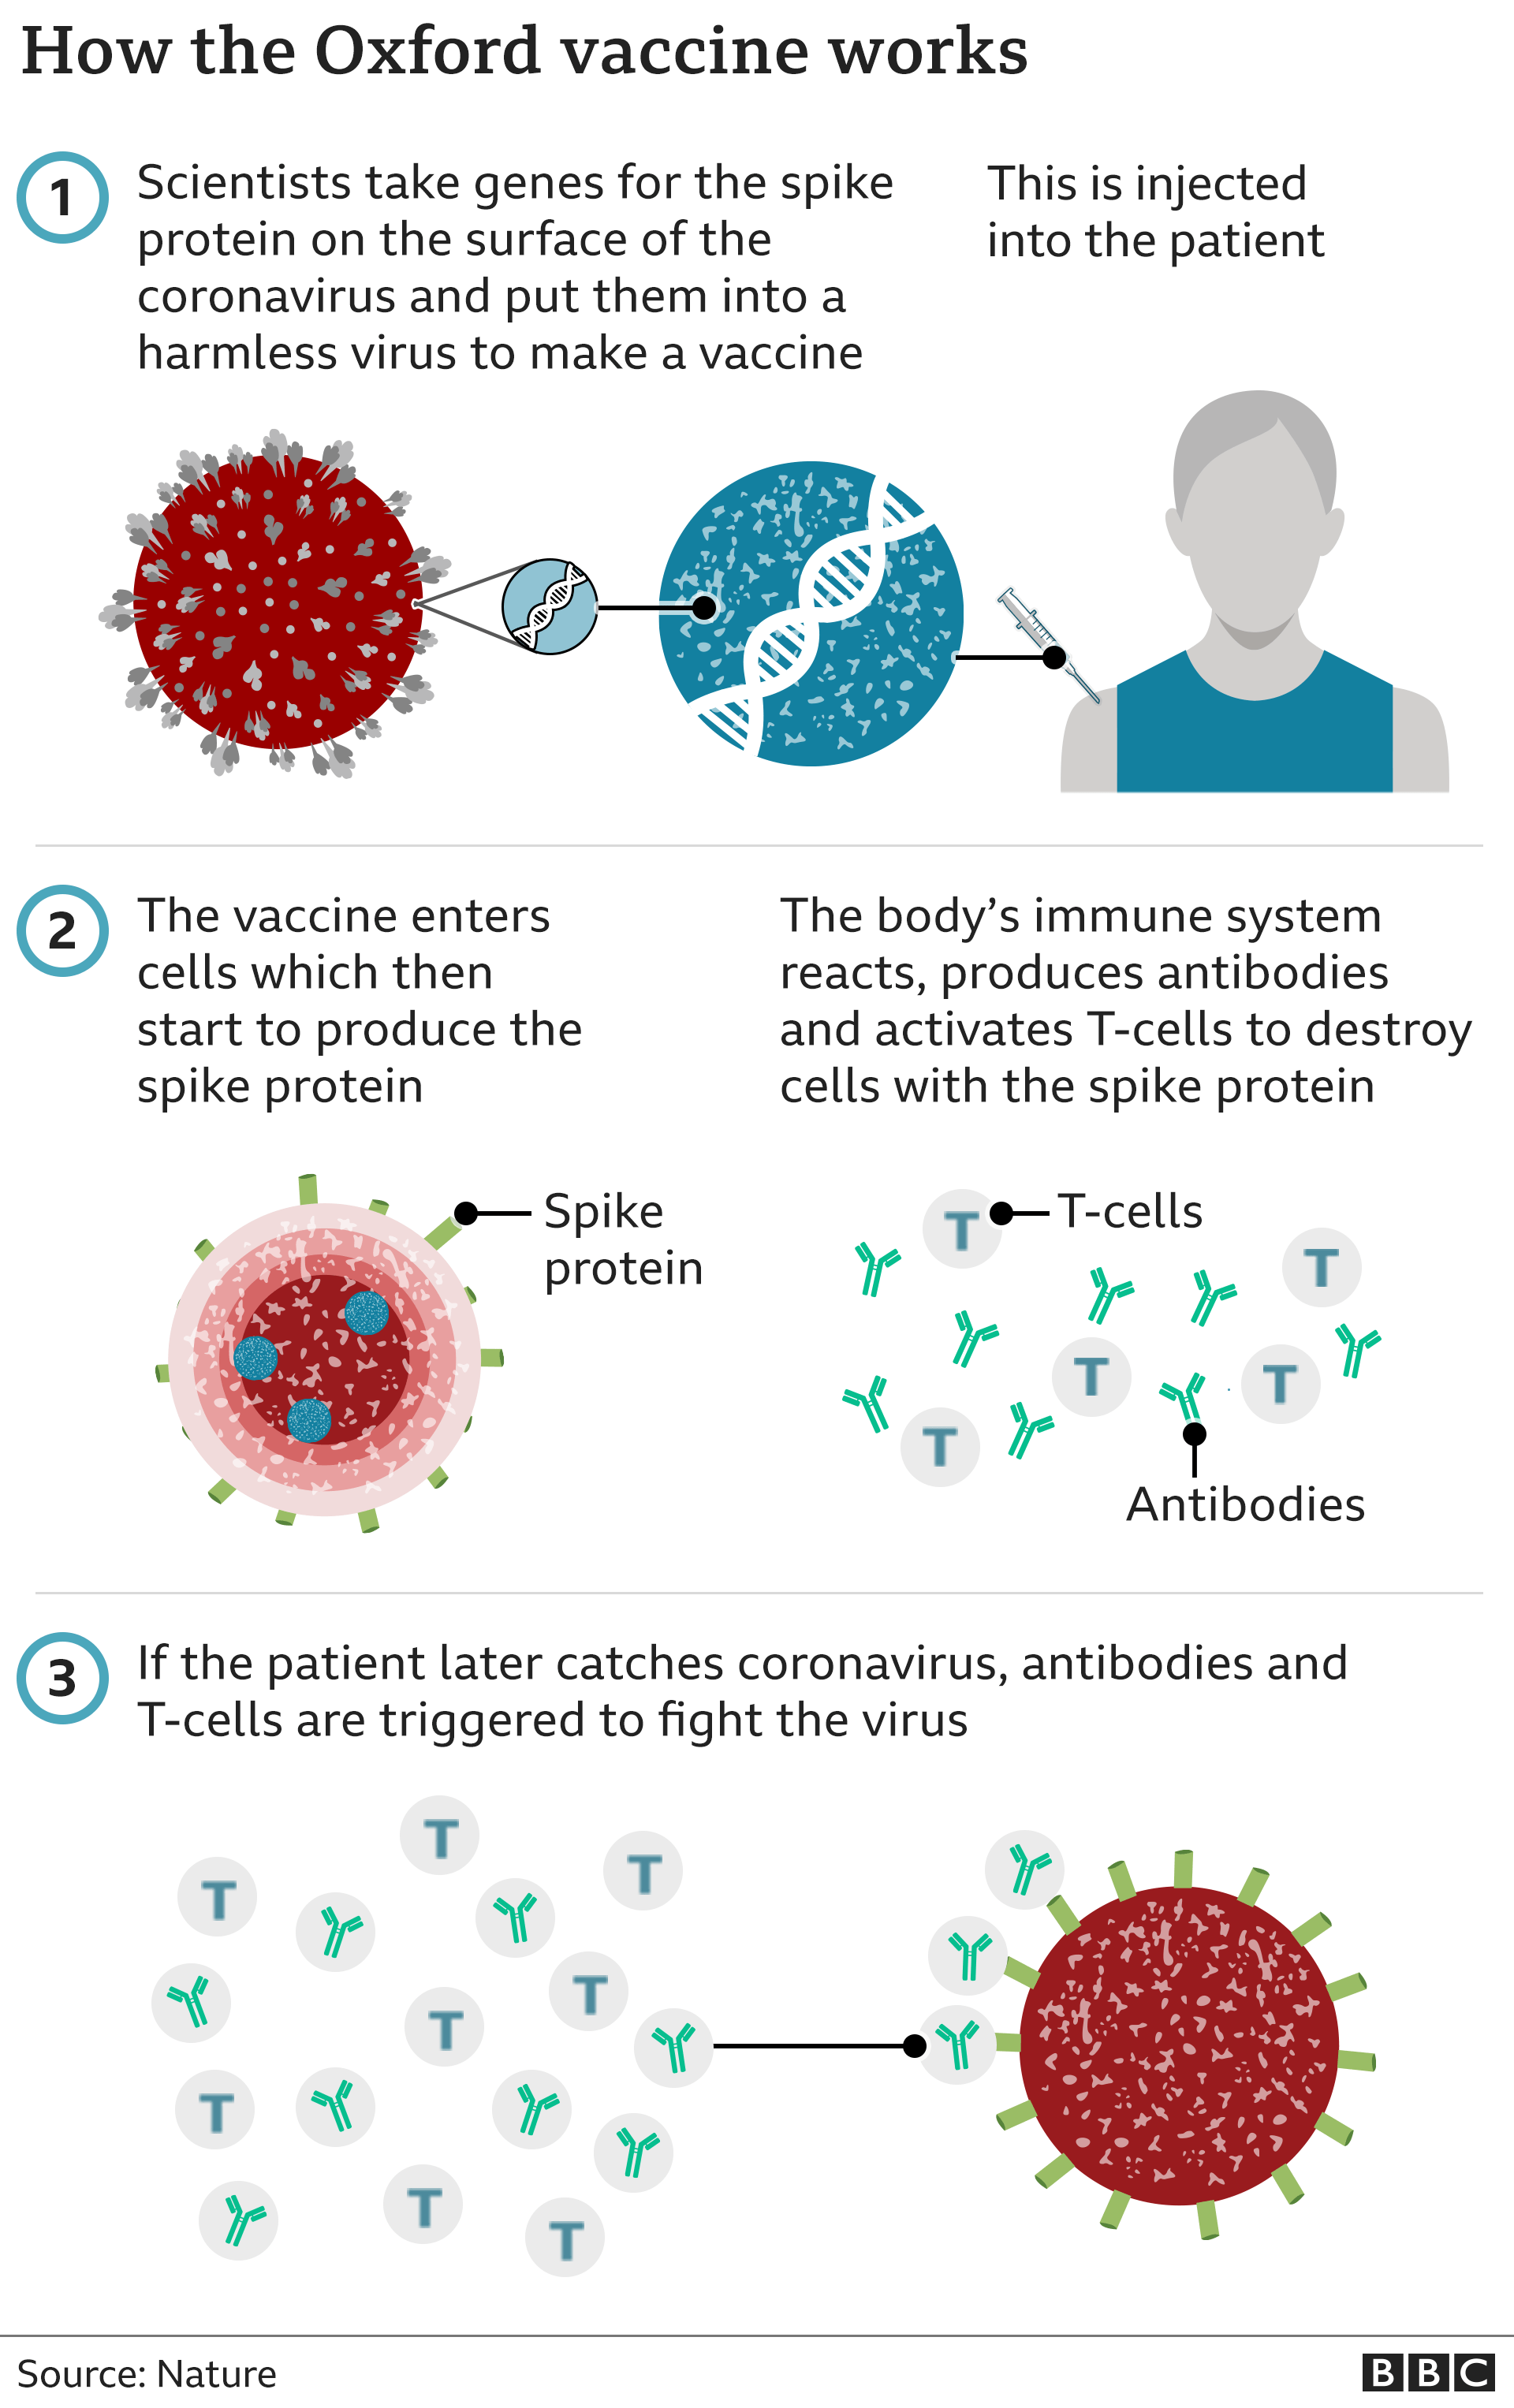 How a viral vector vaccine works -scientists take genes for the spike protein and put them into a harmless virus to make a vaccine, which is then injected into the body. The vaccine mimics the coronavirus and the body's immune system reacts by making anti bodies and t - cells. If a person encounters the virus this triggers an immune response.